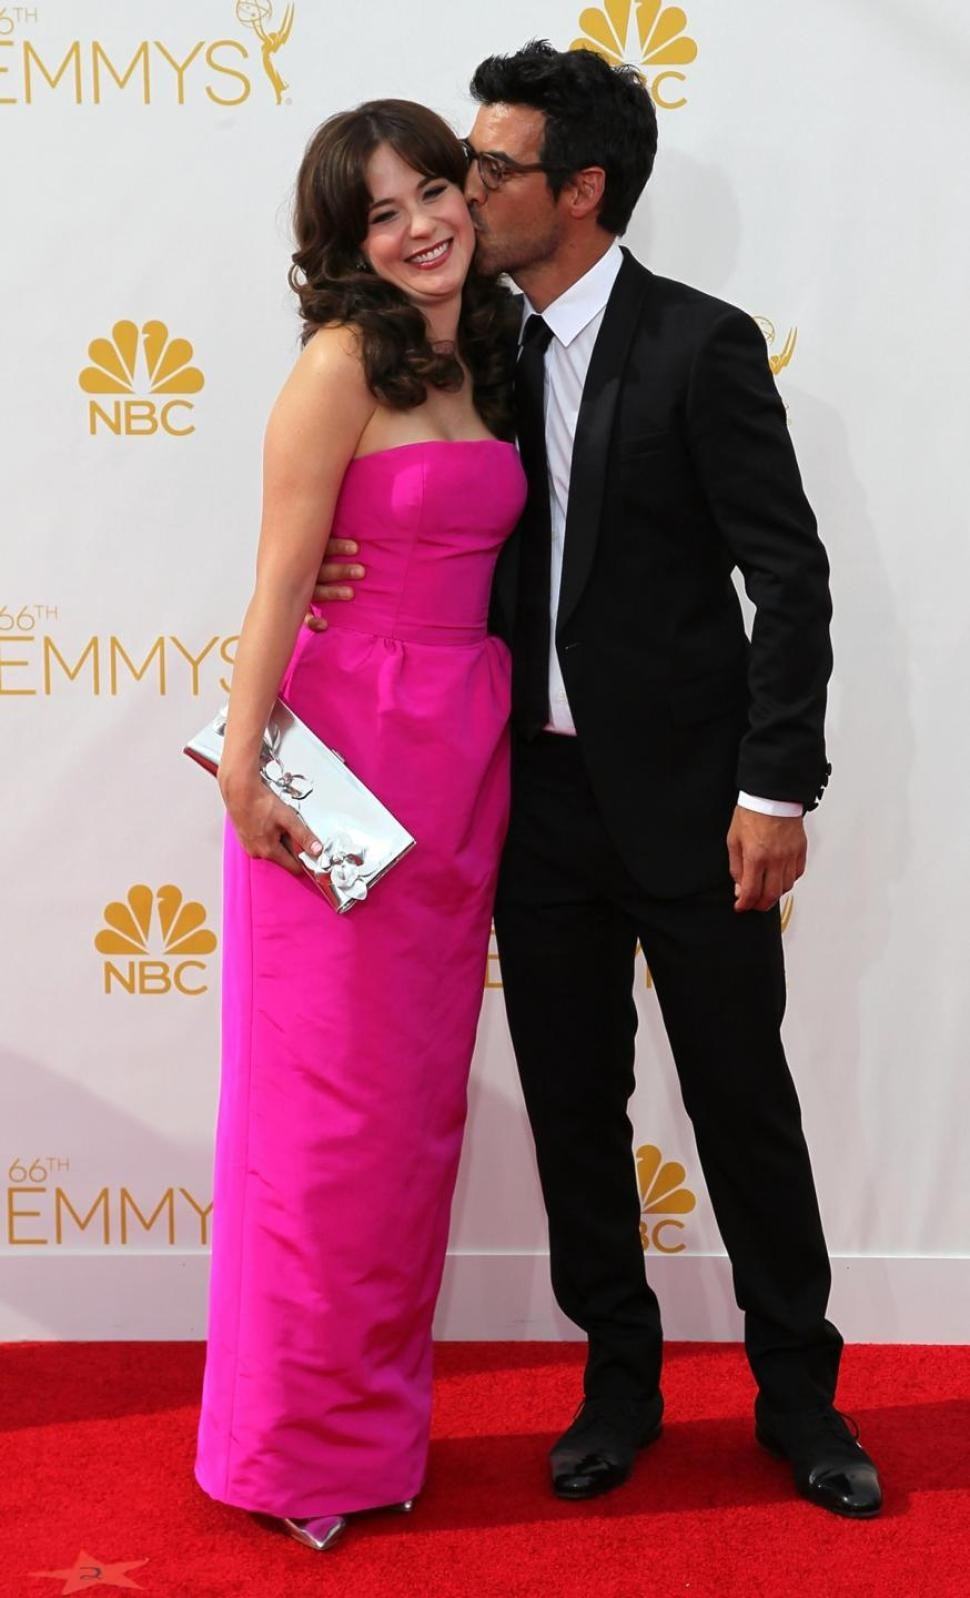 Zooey Deschanel Gives Birth AND Ties The Knot In A Secret Ceremony | Zooey Deschanel